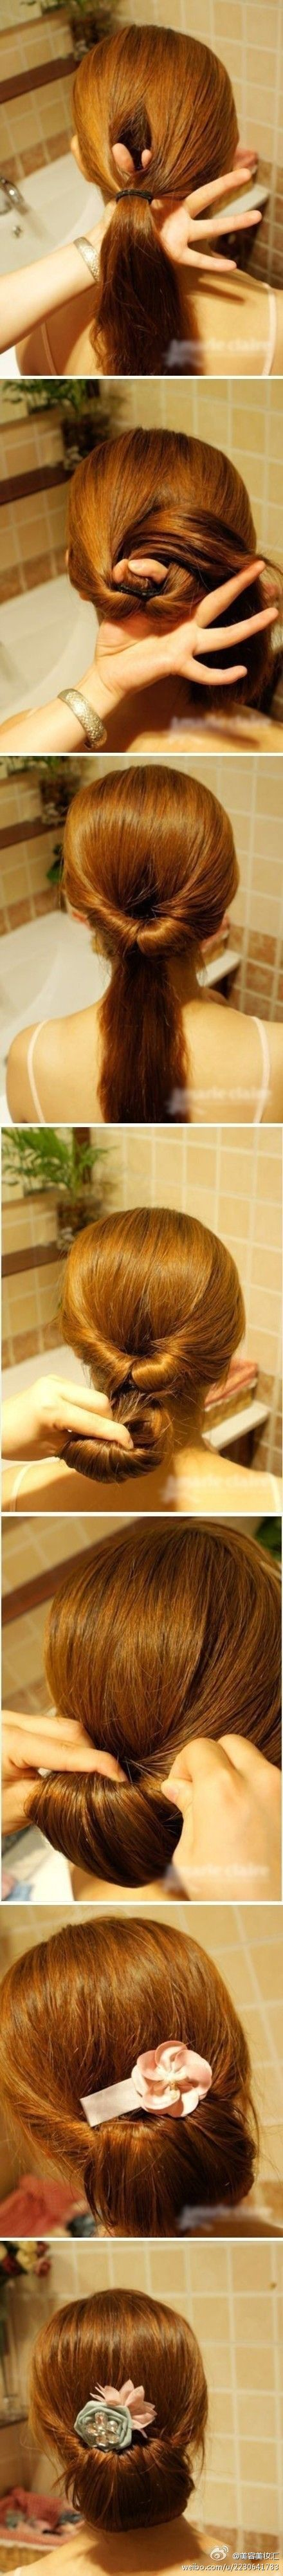 umm amazing! I've done the ponytail, never thought to continue into a bun. SO CUTE!